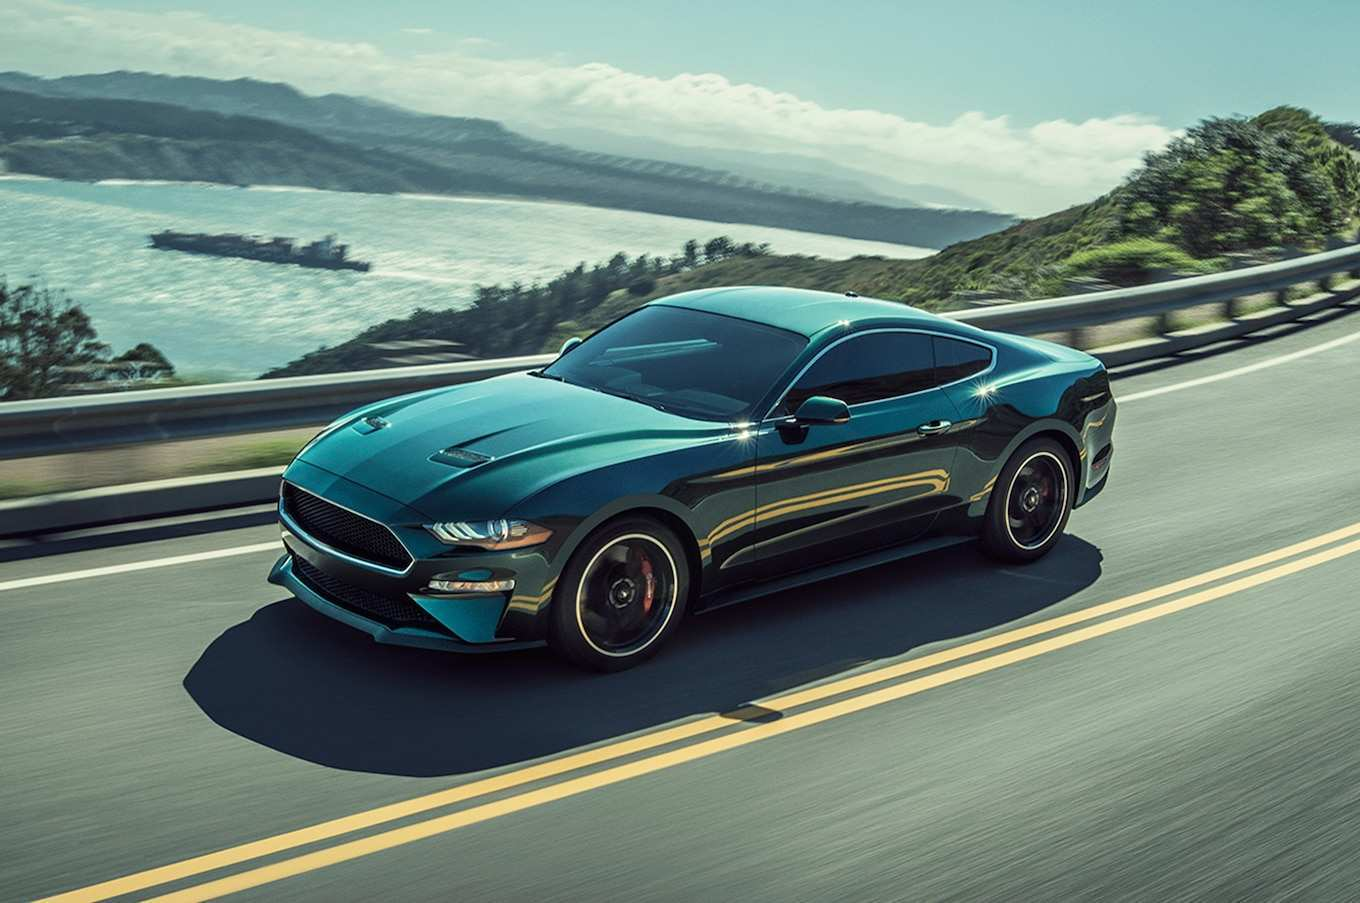 35 Best Review The Ford Bullitt 2019 For Sale First Drive Price Performance And Review Exterior for The Ford Bullitt 2019 For Sale First Drive Price Performance And Review